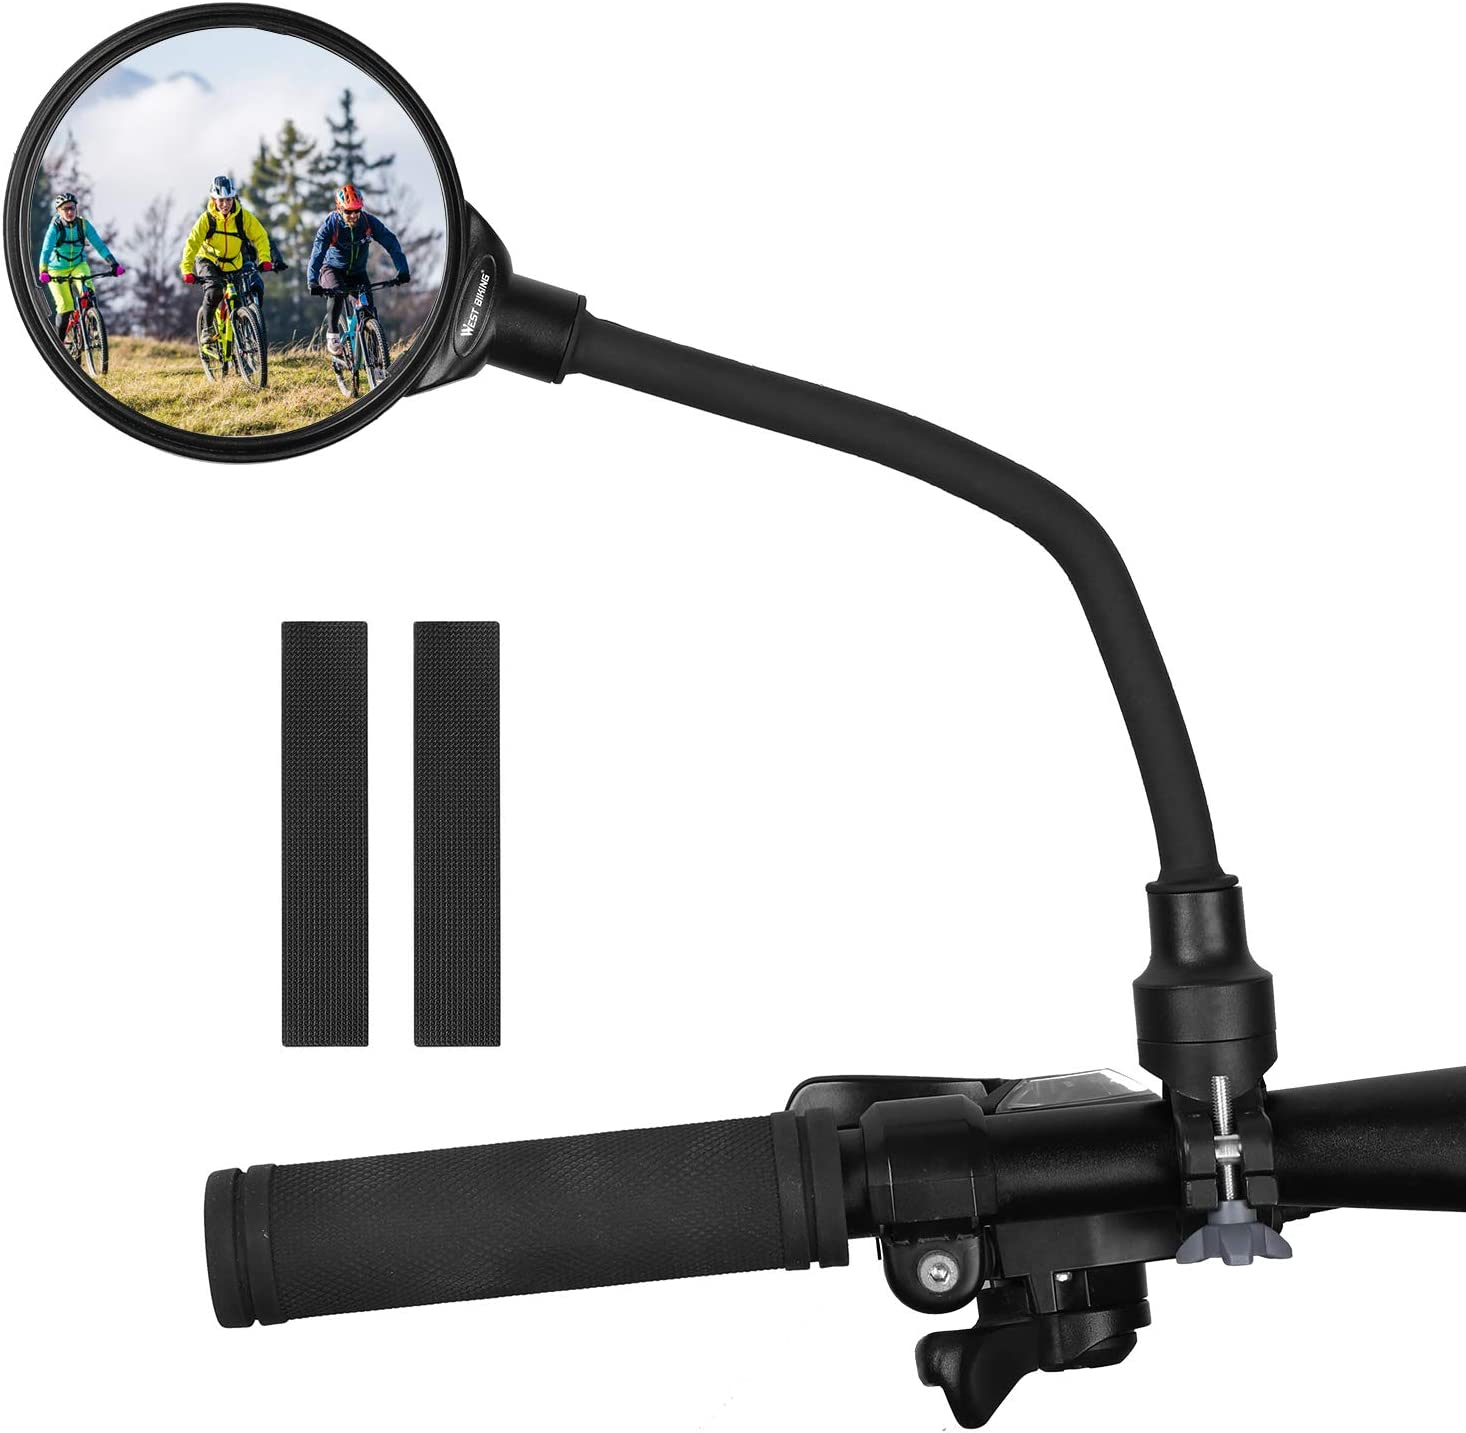 Lasting Bicycle Rear View Mirror Mount Holder Clamp Motorcycle Accessories